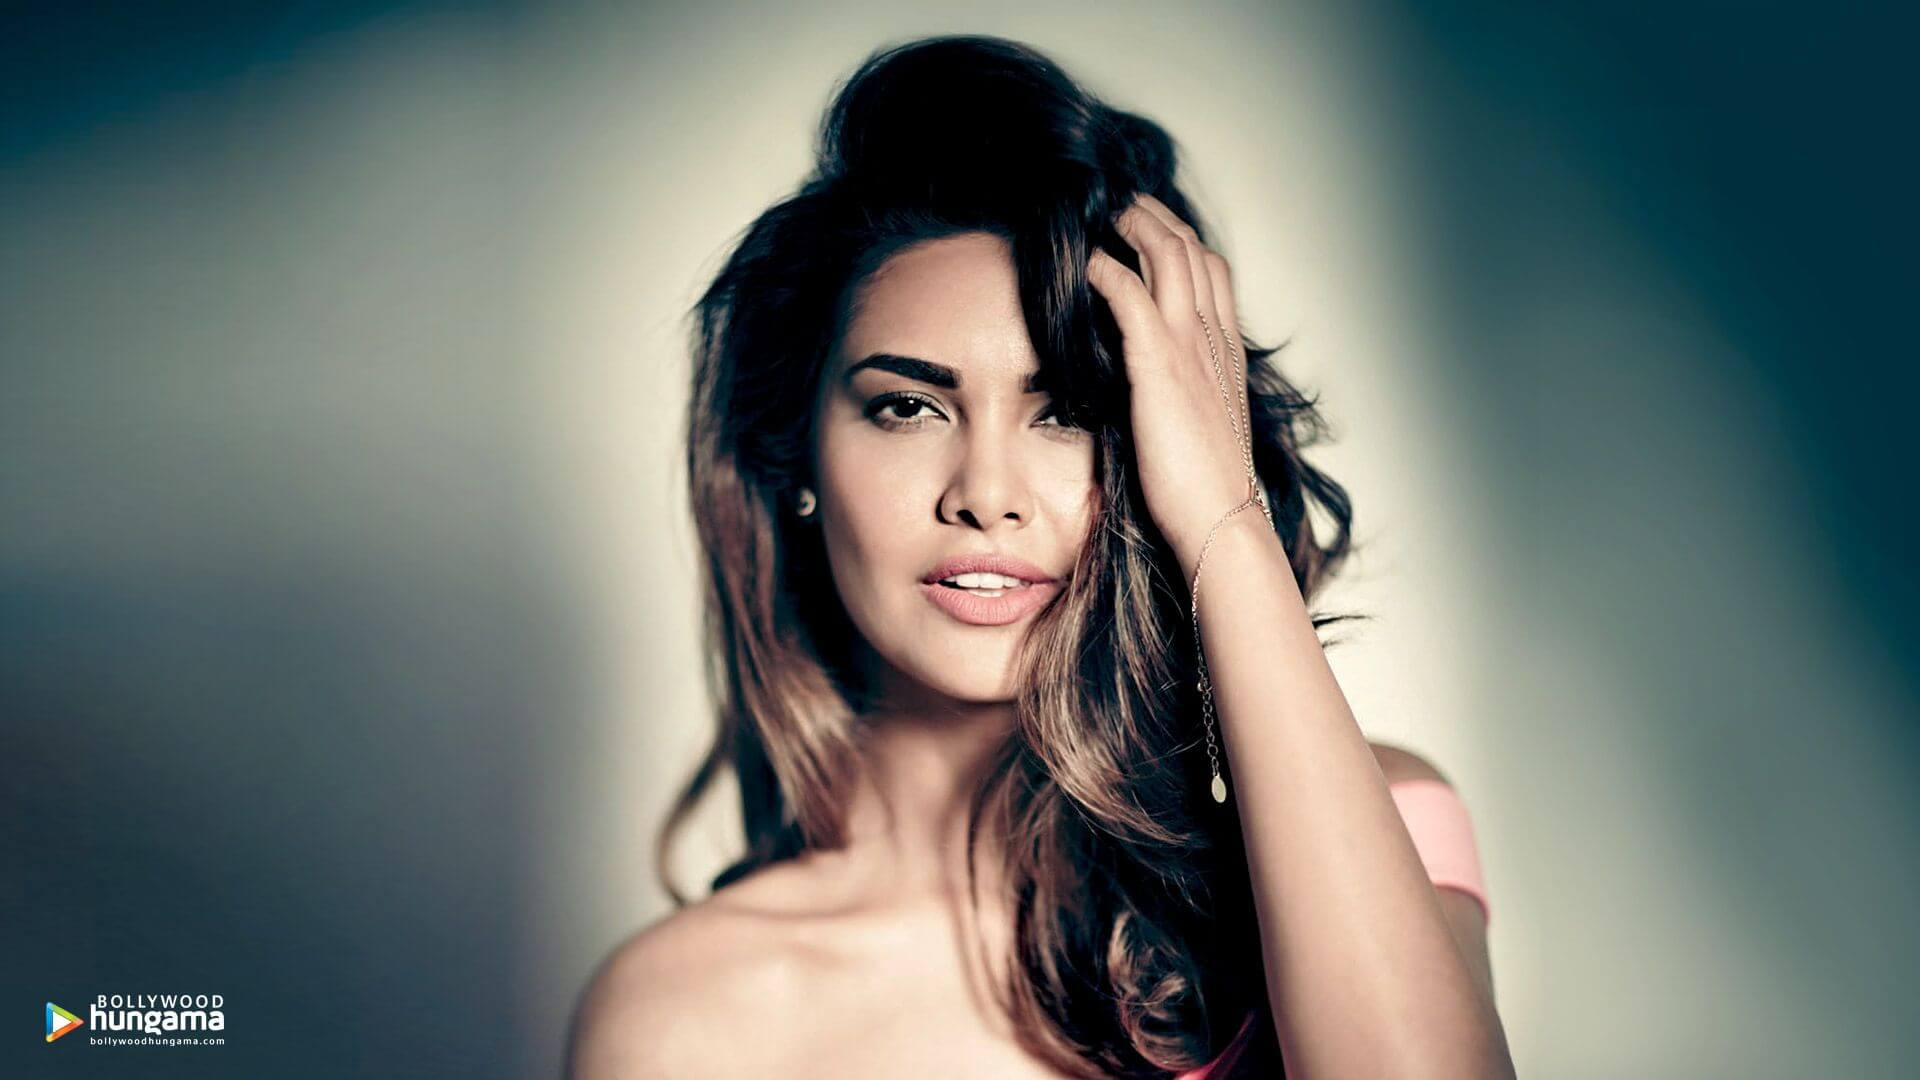 Esha Gupta Images(photos), Age, Height, Net Worth, Date Of Birth, Family, Biography, Son, Marriage, Boyfriend, Education, Awards, Hairstyle, Instagram, Twitter, Facebook, Wiki, Imdb (6)